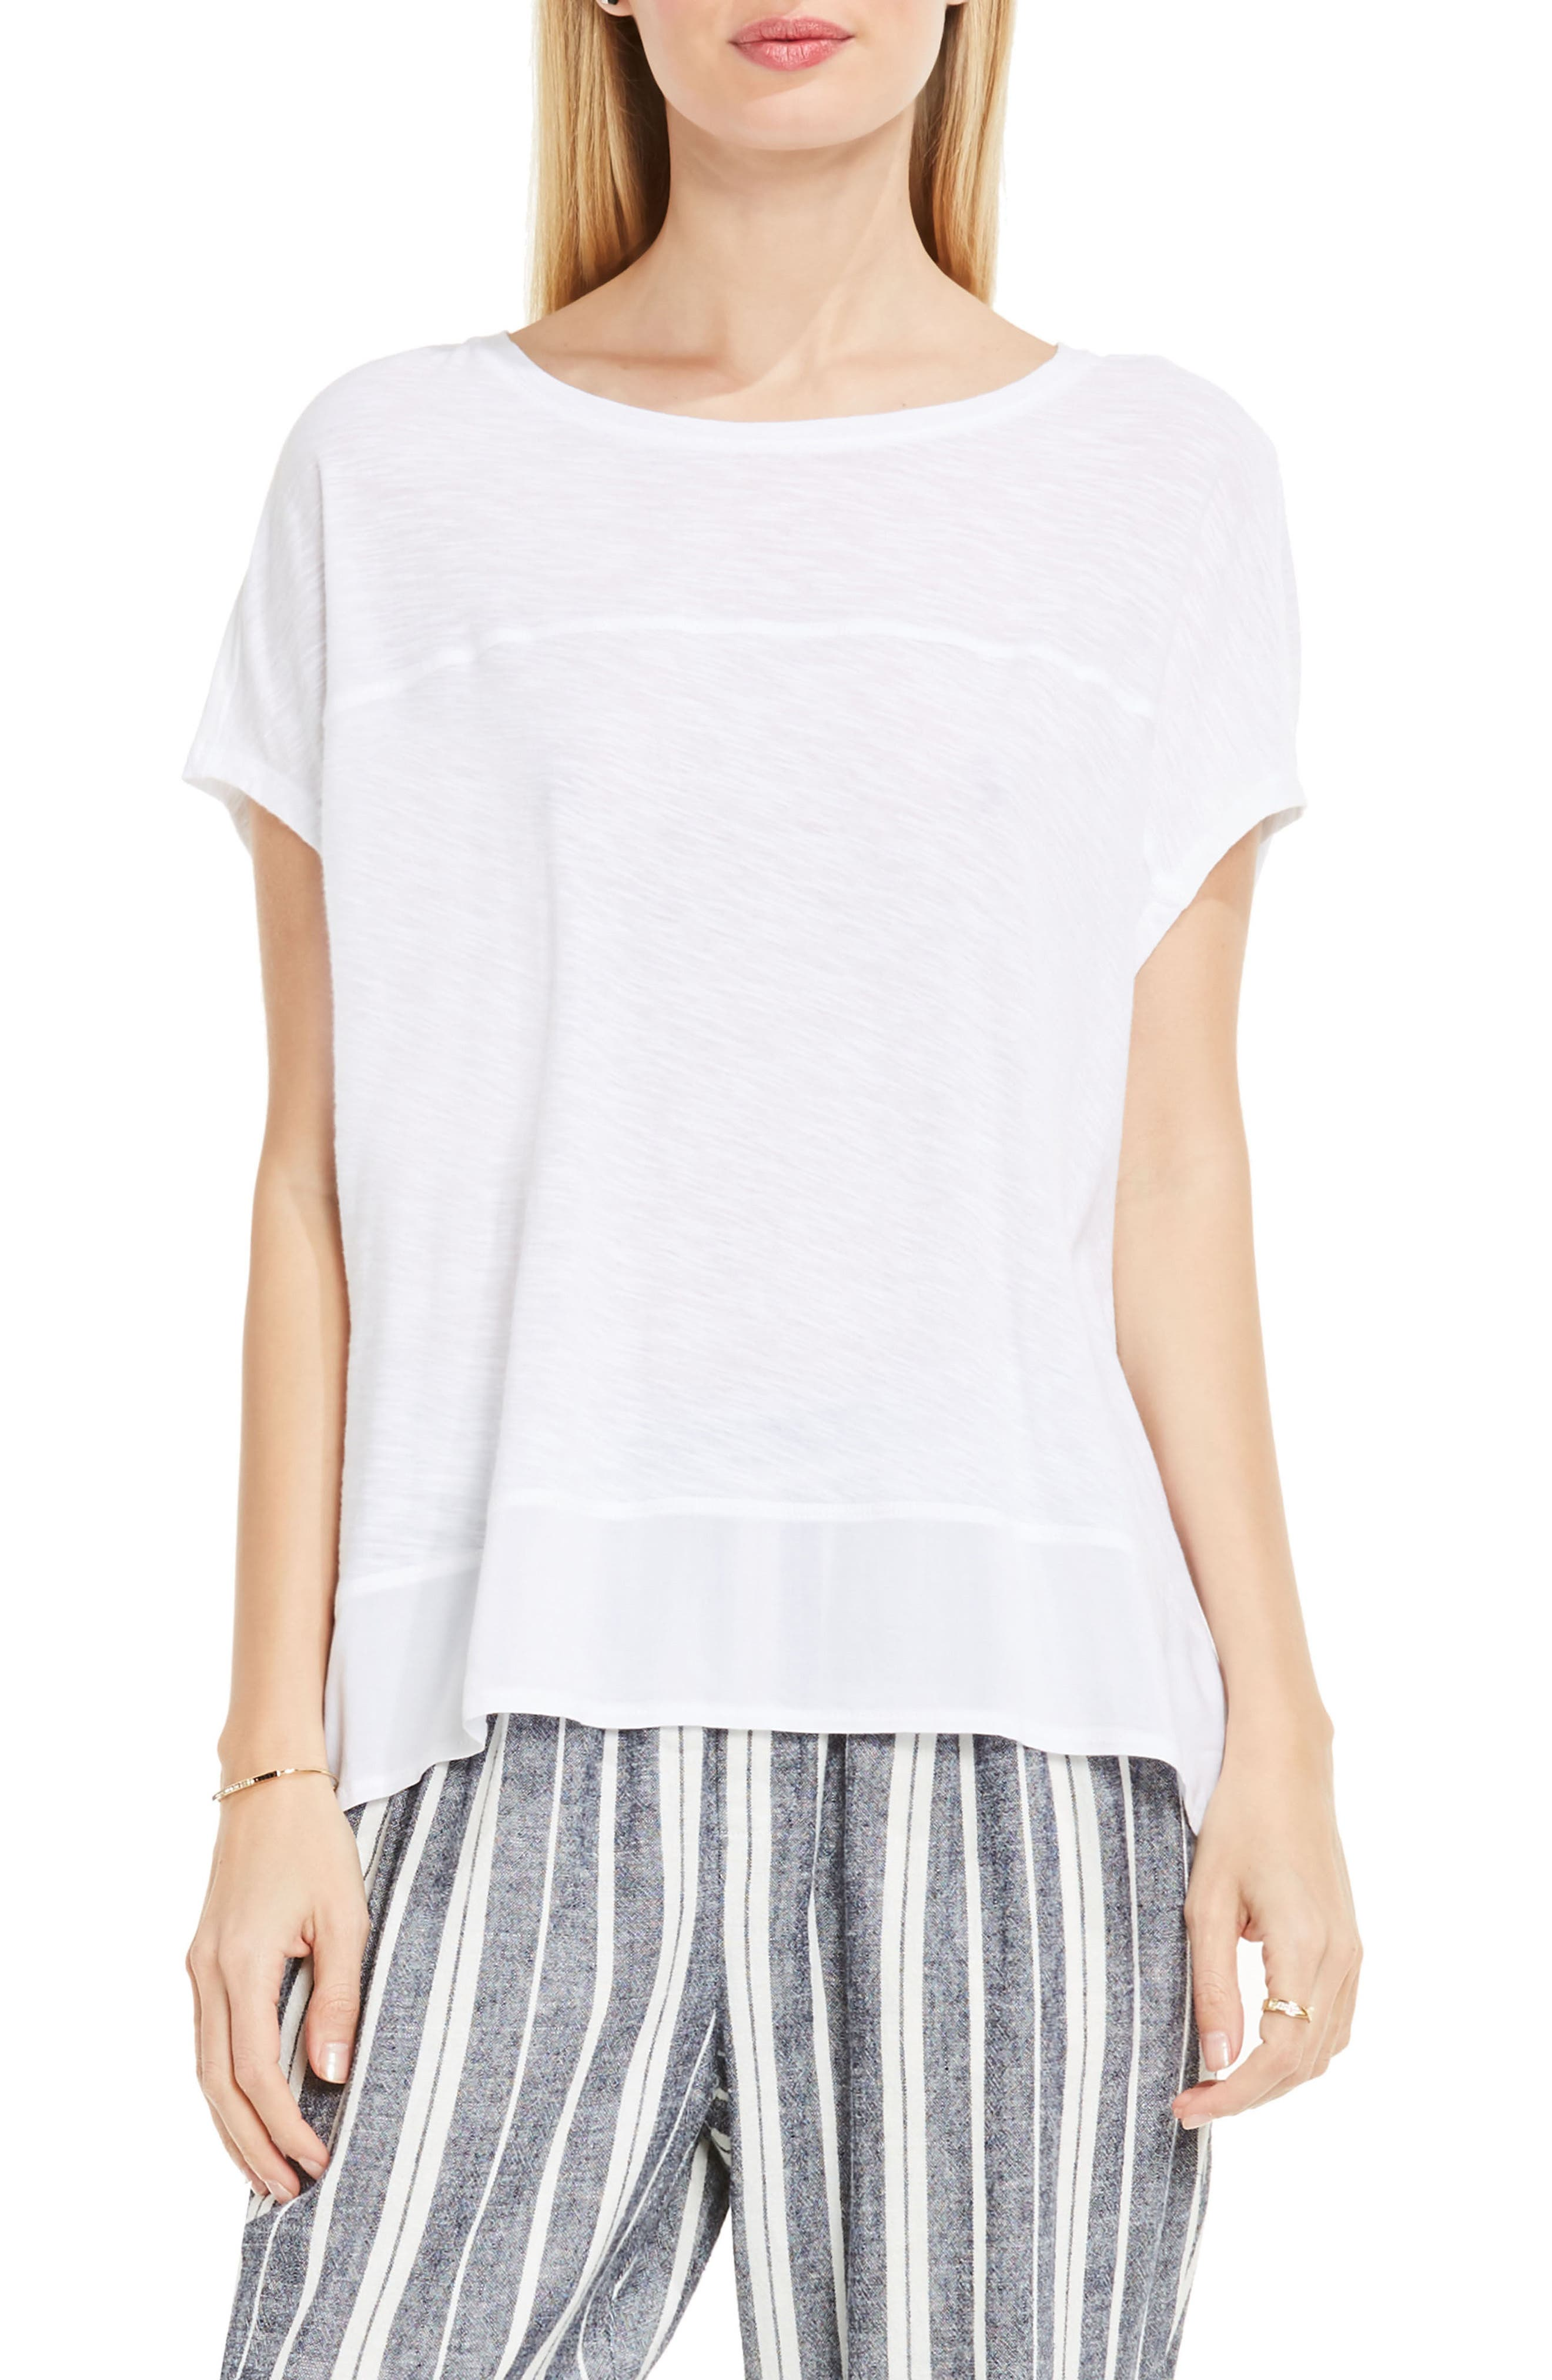 Alternate Image 1 Selected - Two by Vince Camuto Chiffon High/Low Hem Knit Tee